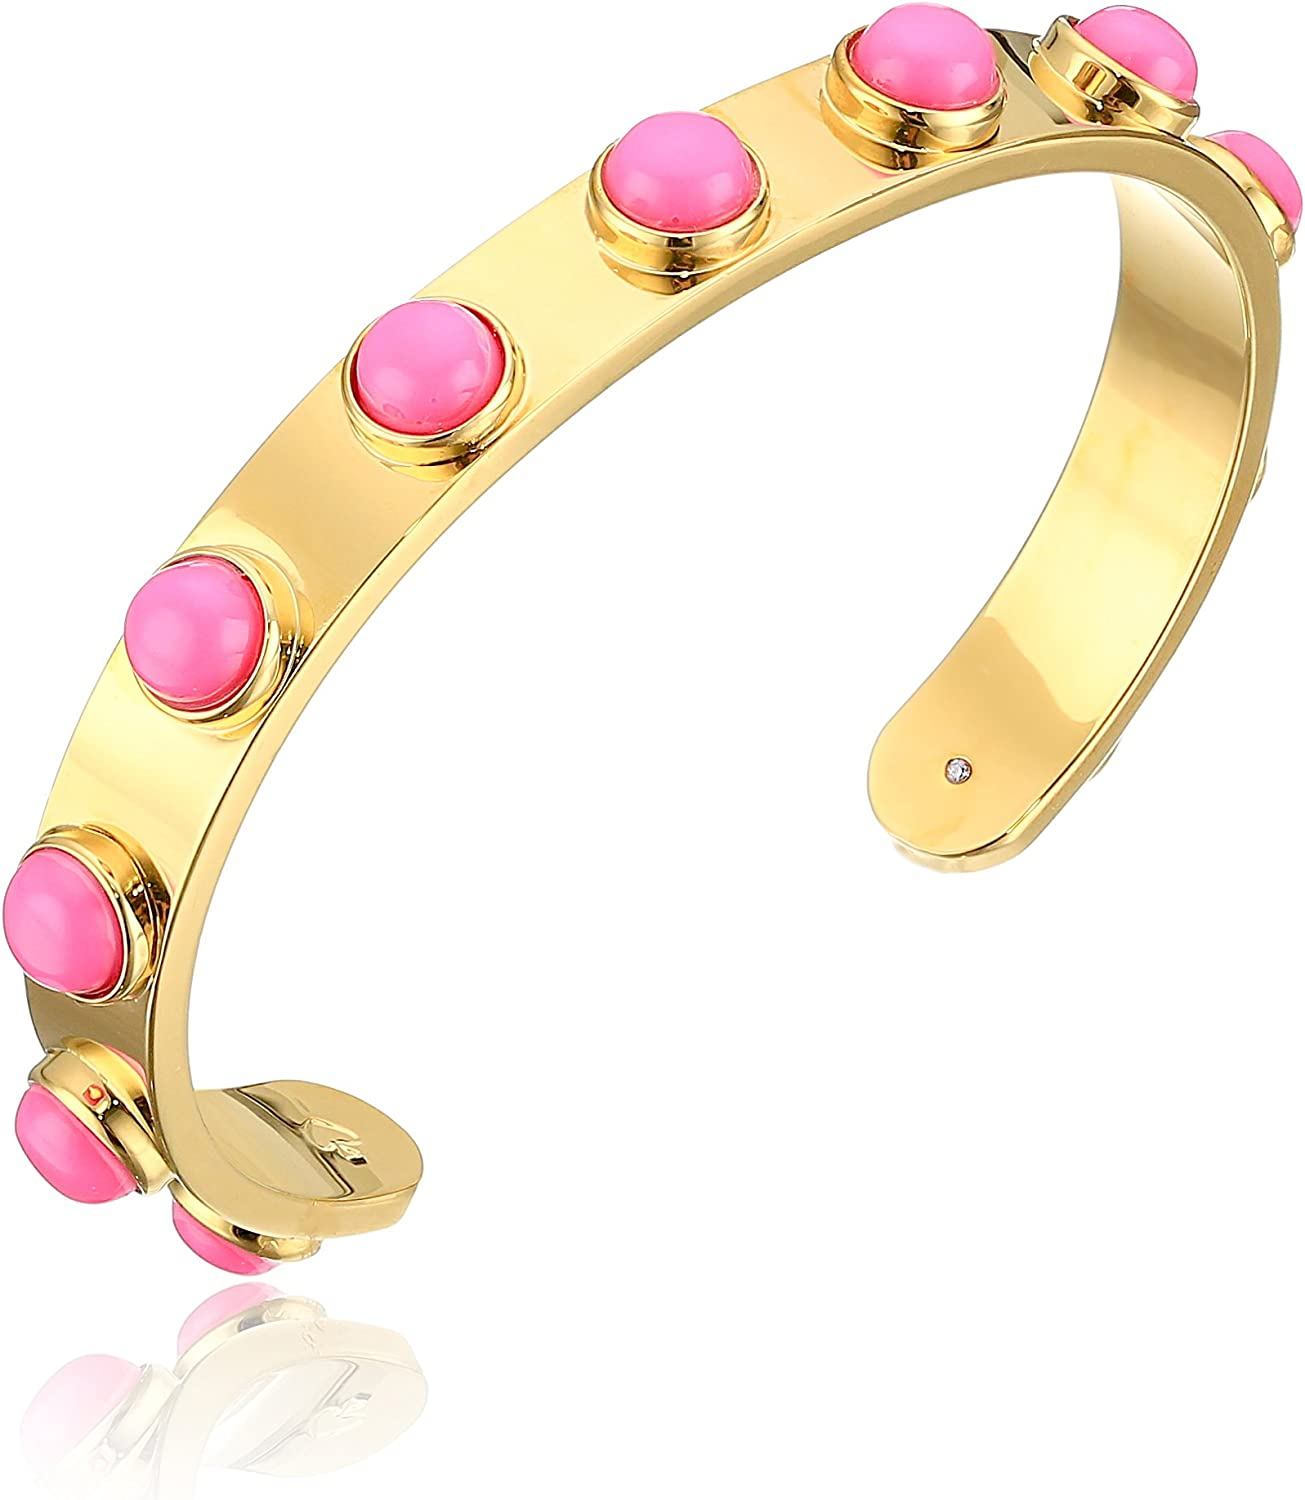 Kate Spade New Cuff Bracelet price A surprise price is realized York